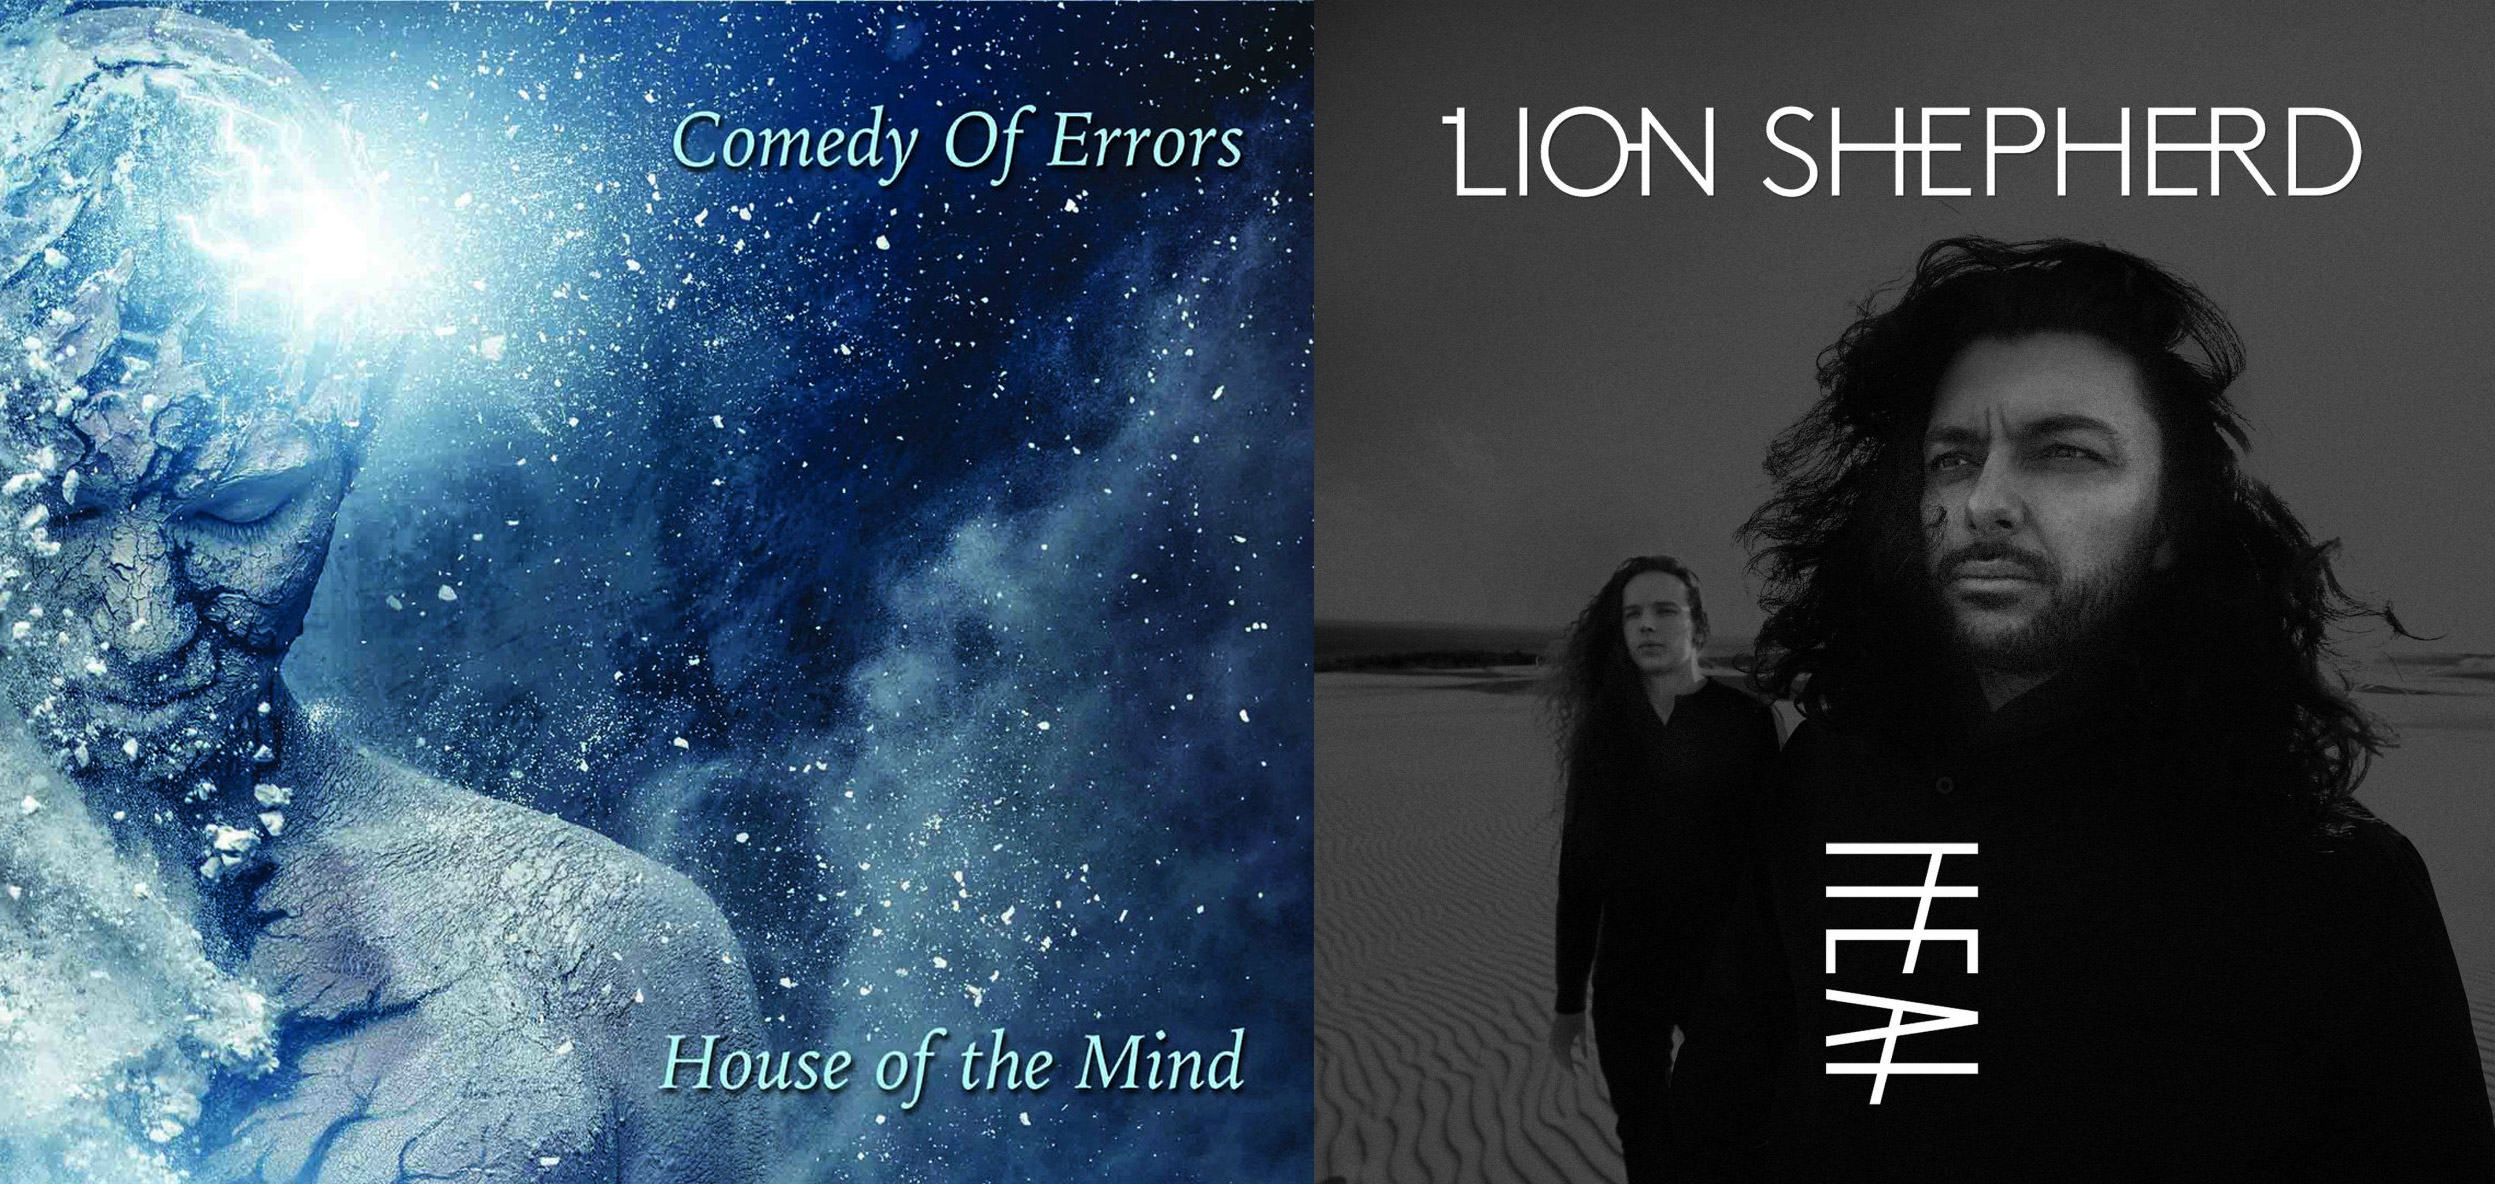 Comedy of Errors, Lion Shepherd